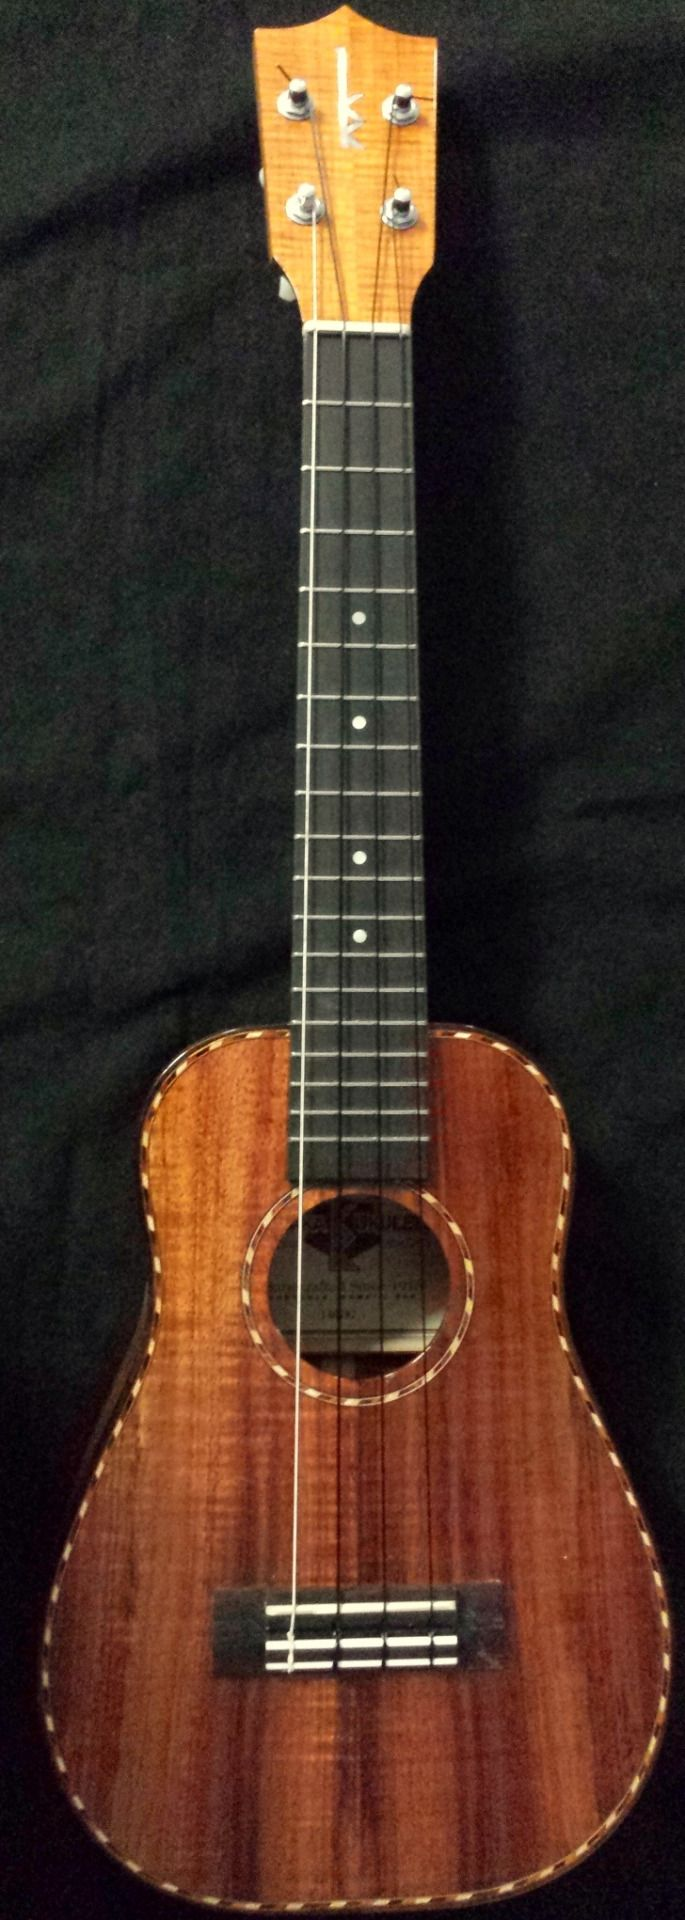 lardyfatboy: The Kamaka bell shaped concert ukulele known as the Ohta San =Lardys Chordophone of the day - a year ago --- https://www.pinterest.com/lardyfatboy/